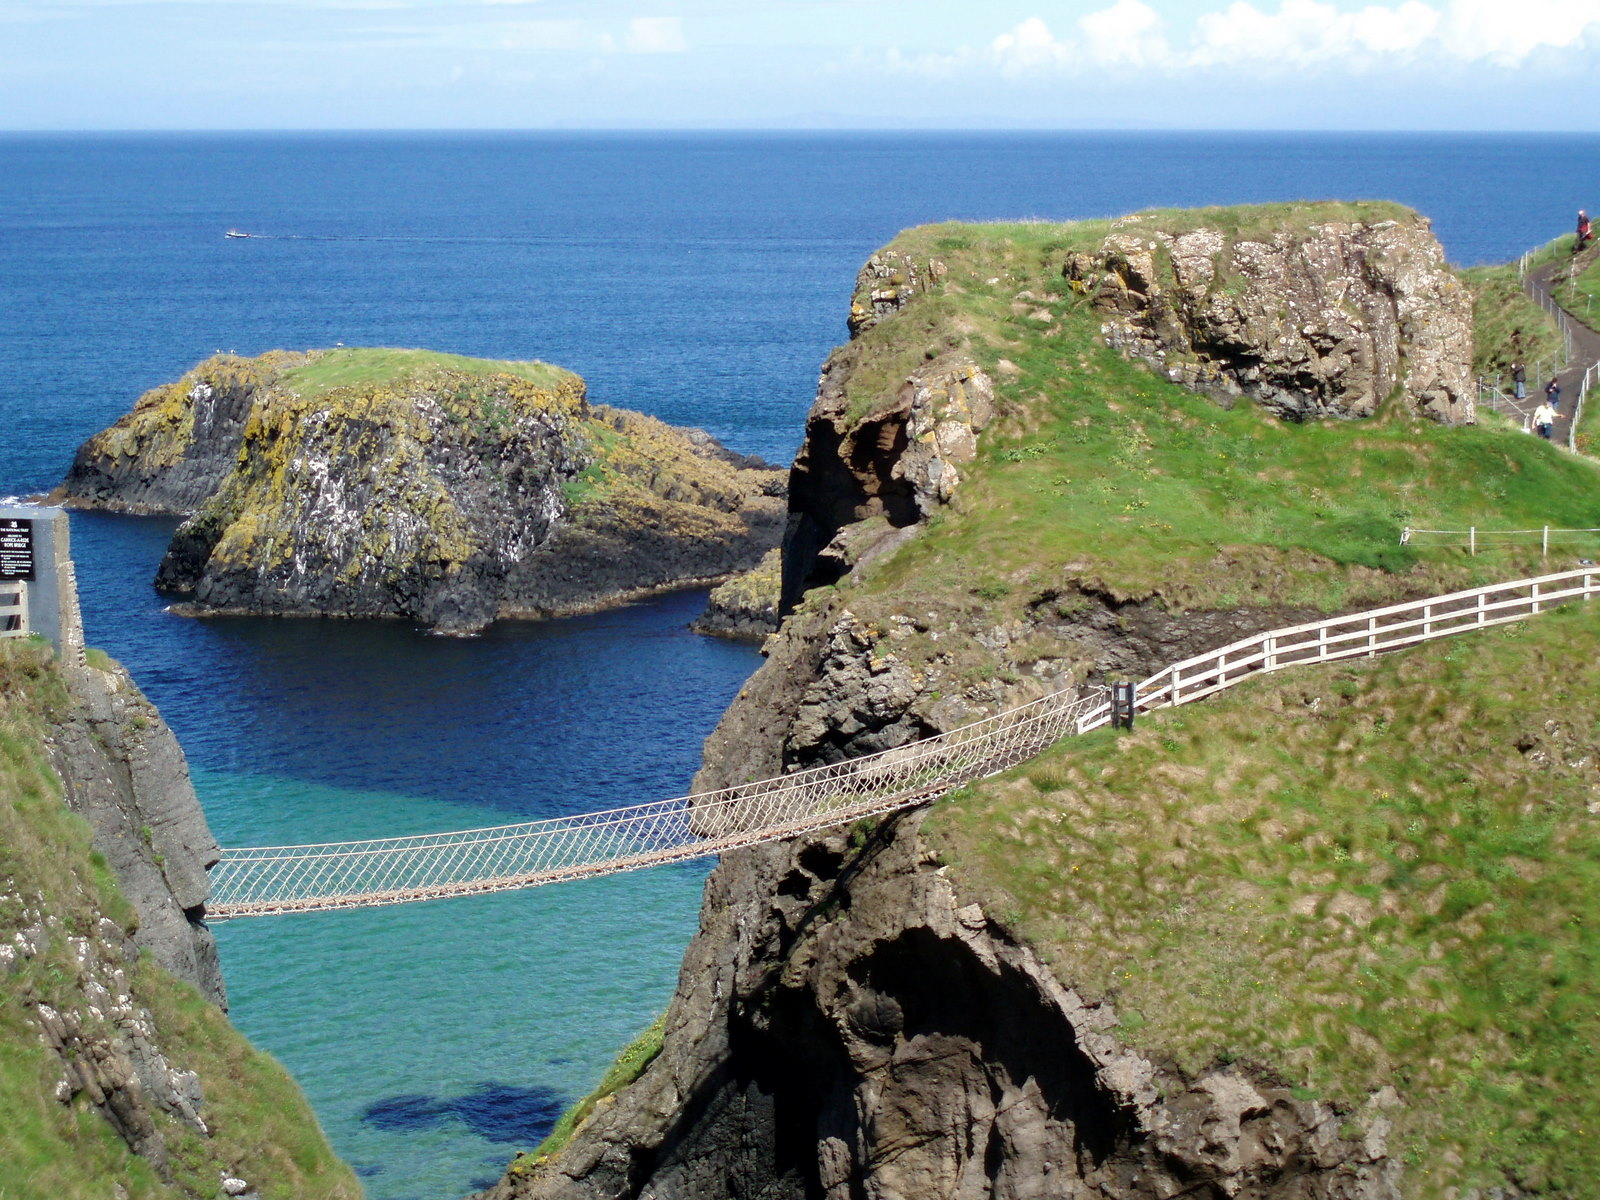 The rope bridge at Carrick-A-Rede